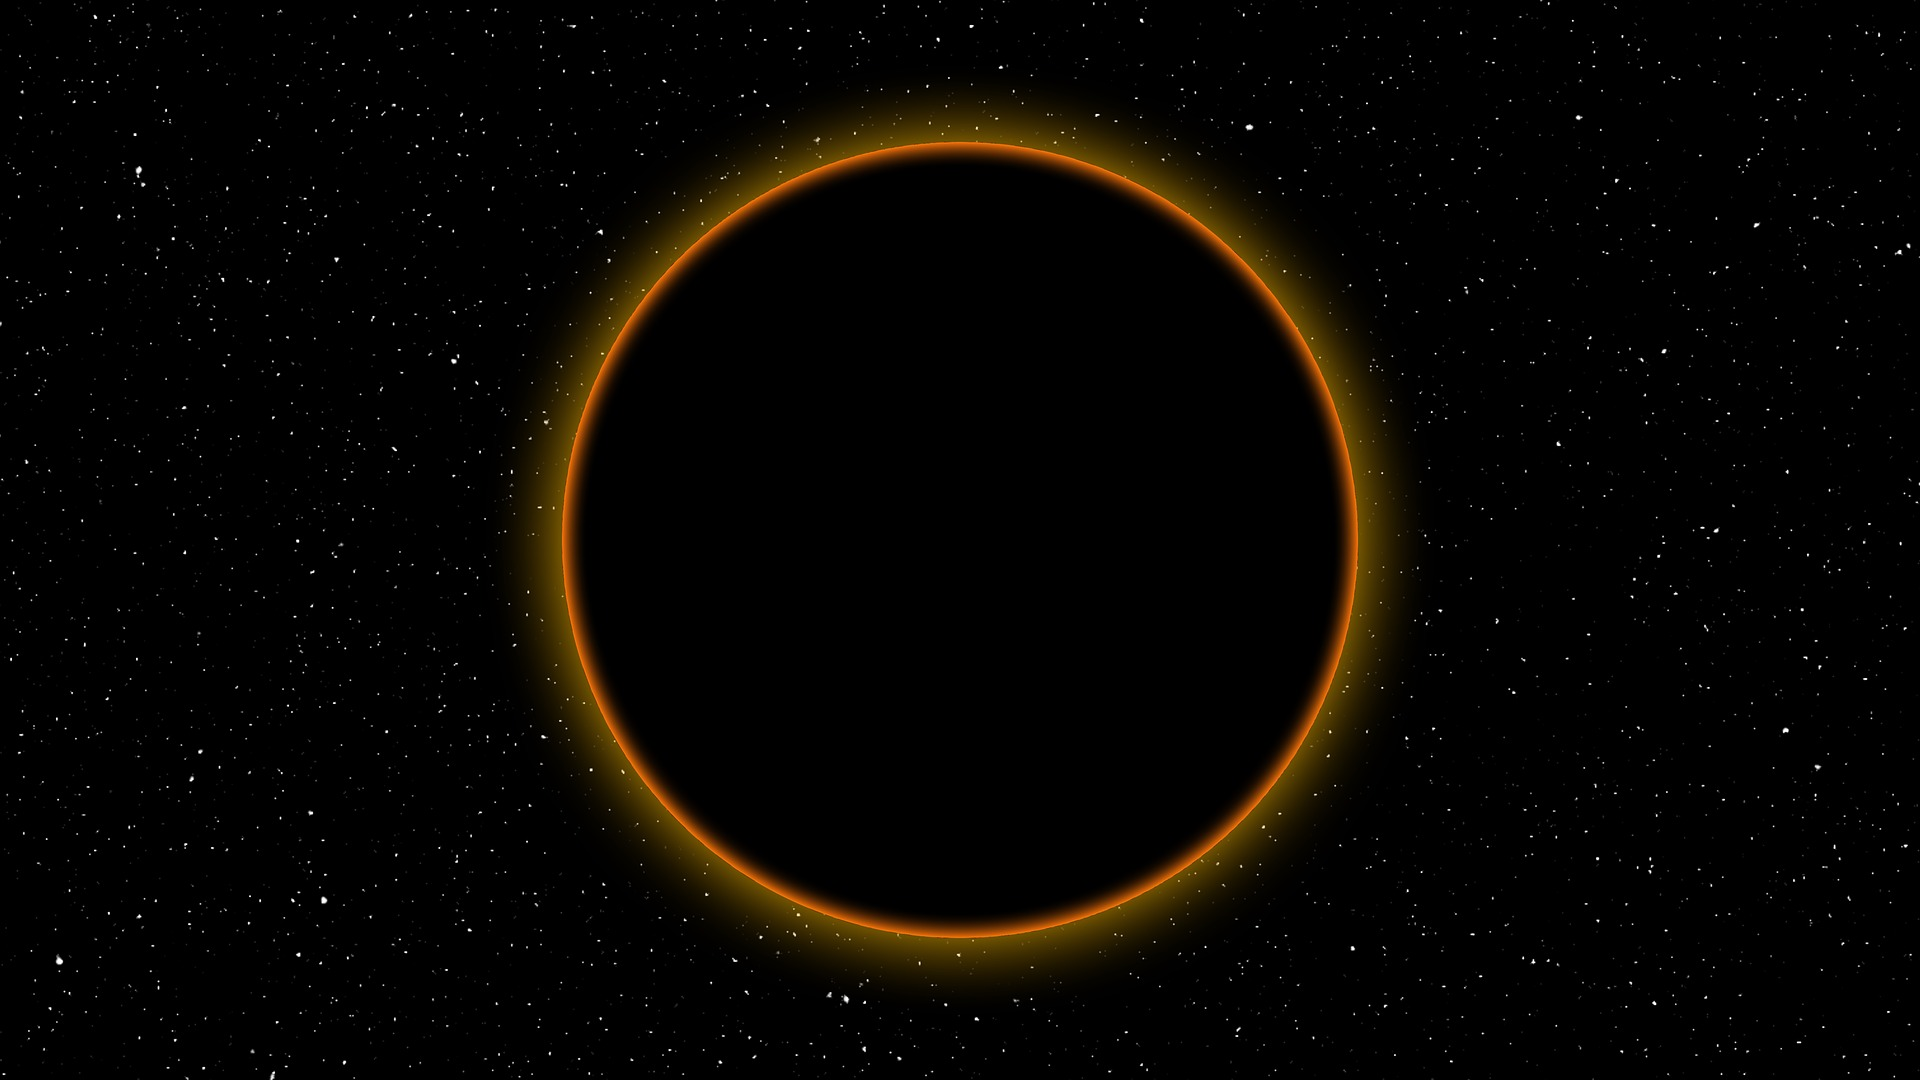 Total Eclipse of the Sun | Protect Your Eyes